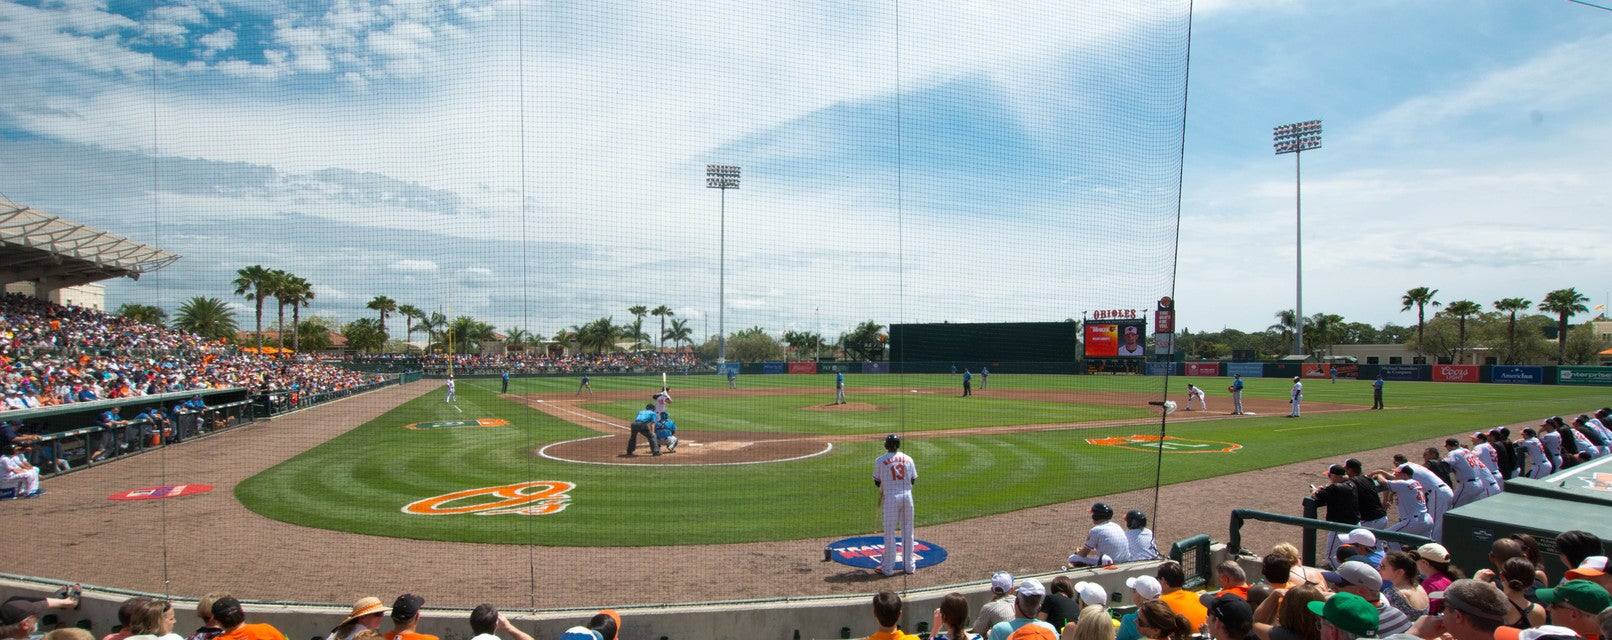 Orioles - Spring Training Tickets